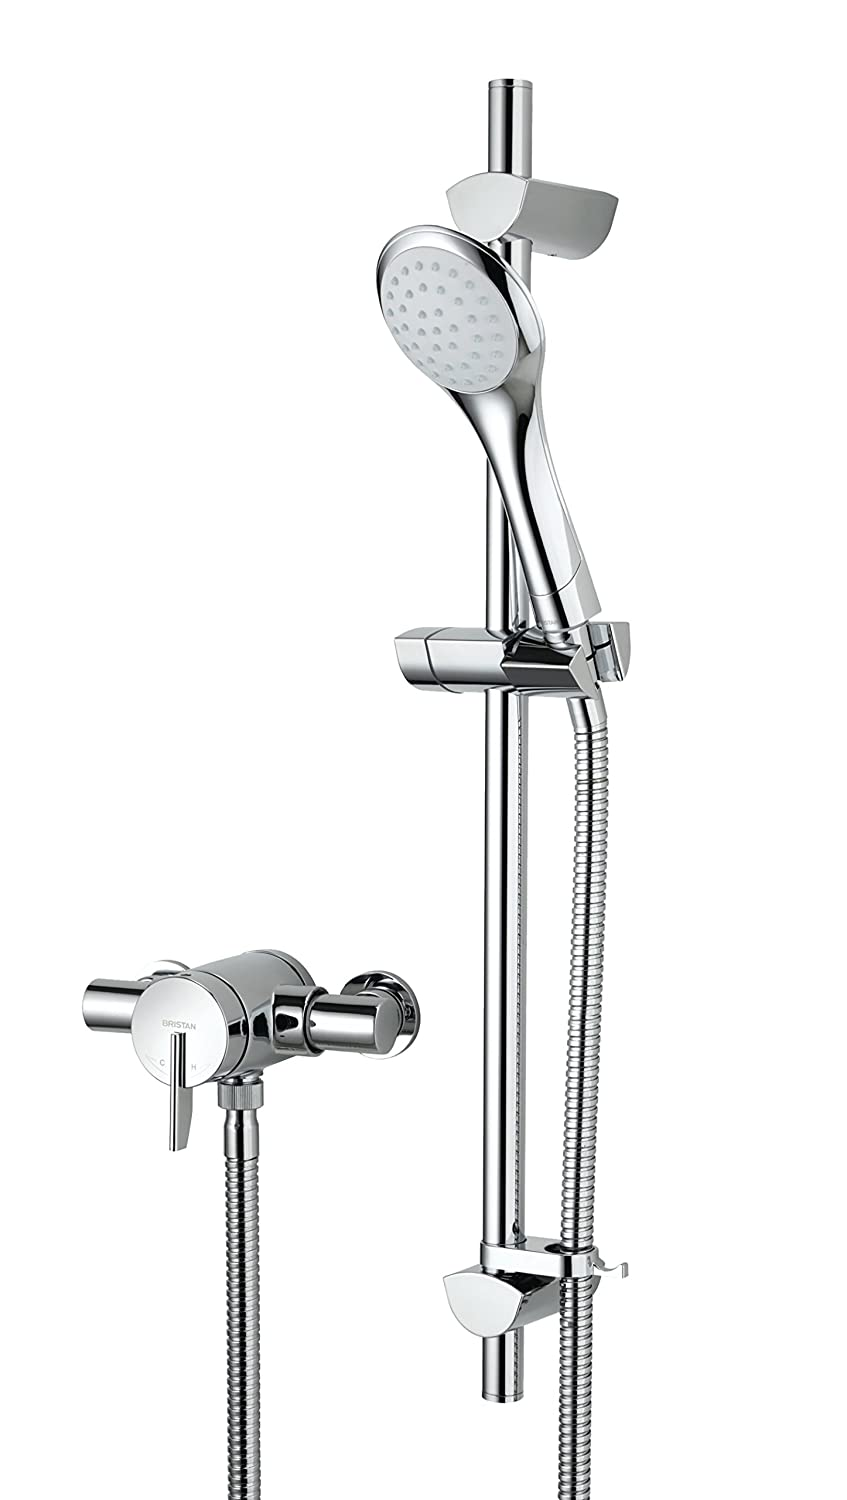 Bristan SOQ2 SHXAR C Sonqiue 2 Thermostatic Surface Mounted Shower Valve with Adjustable Riser - Chrome